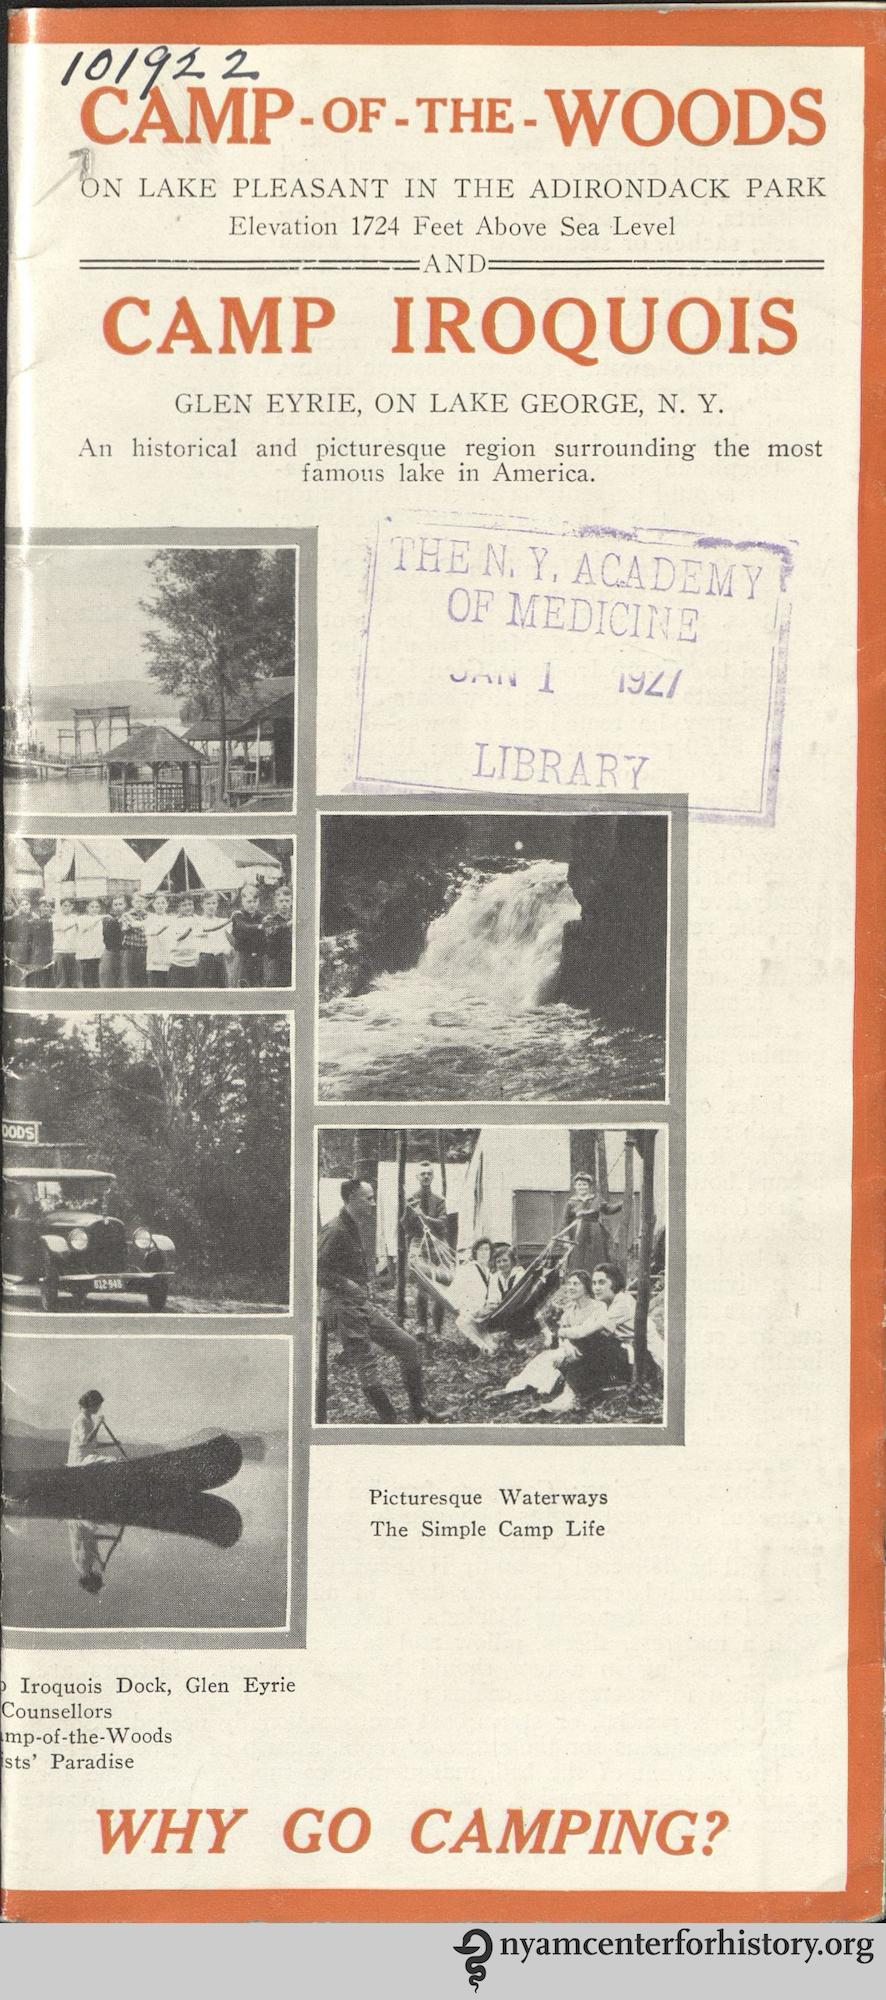 Camp-of-the-Woods, on Lake Pleasant in the Adirondack Park and Camp Iroquois, Glen Eyrie, on Lake George, N.Y. (1925)